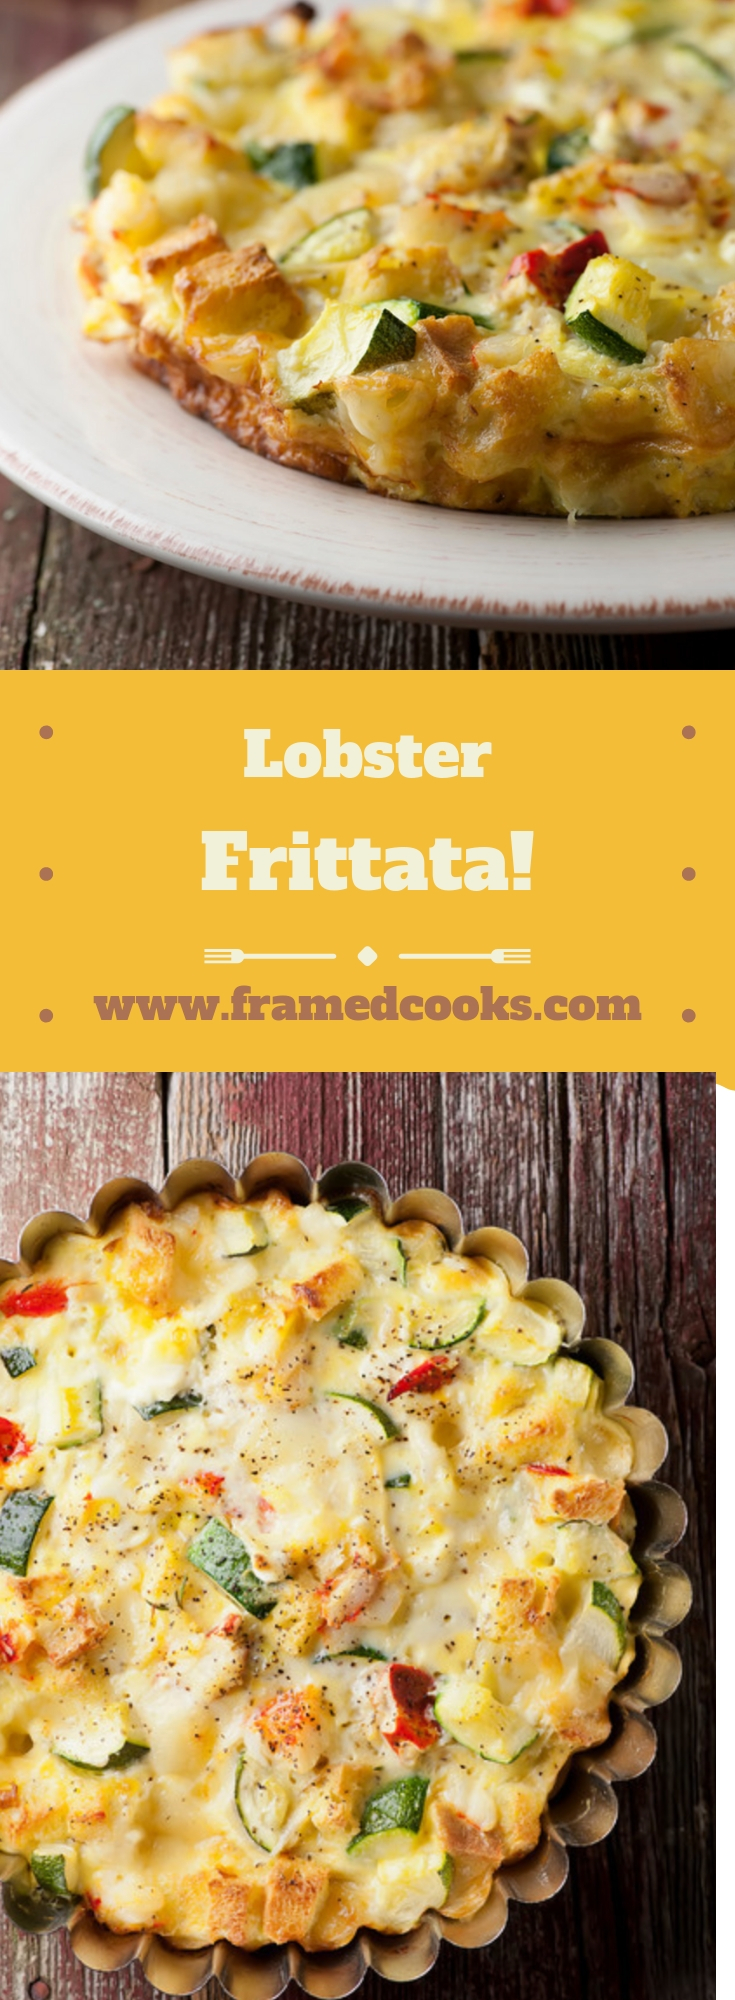 A few eggs, some zucchini, a little lobster and you are in brunch heaven with this out of this world lobster frittata recipe!